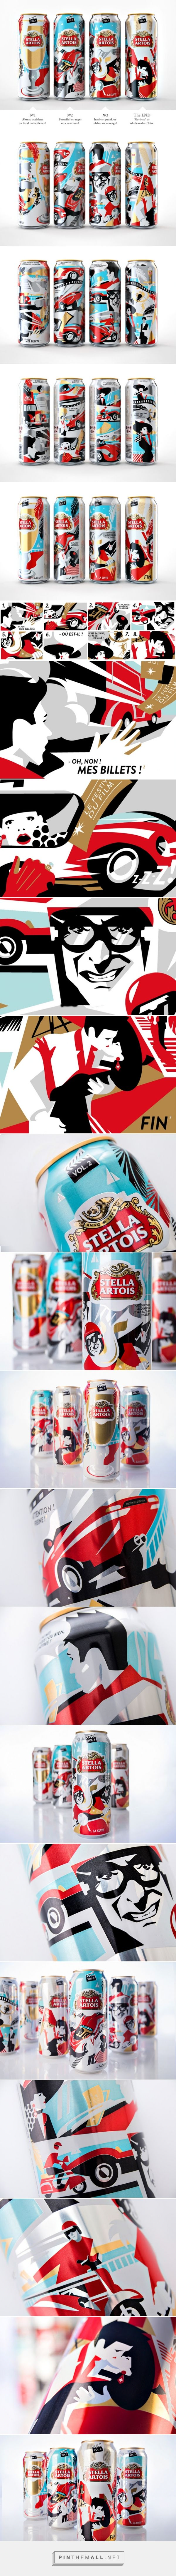 #StellaArtois Limited Edition - #Cannes Film Festival #packaging designed by BBDO Ukraine - http://www.packagingoftheworld.com/2015/05/stella-artois-limited-edition-cannes.html